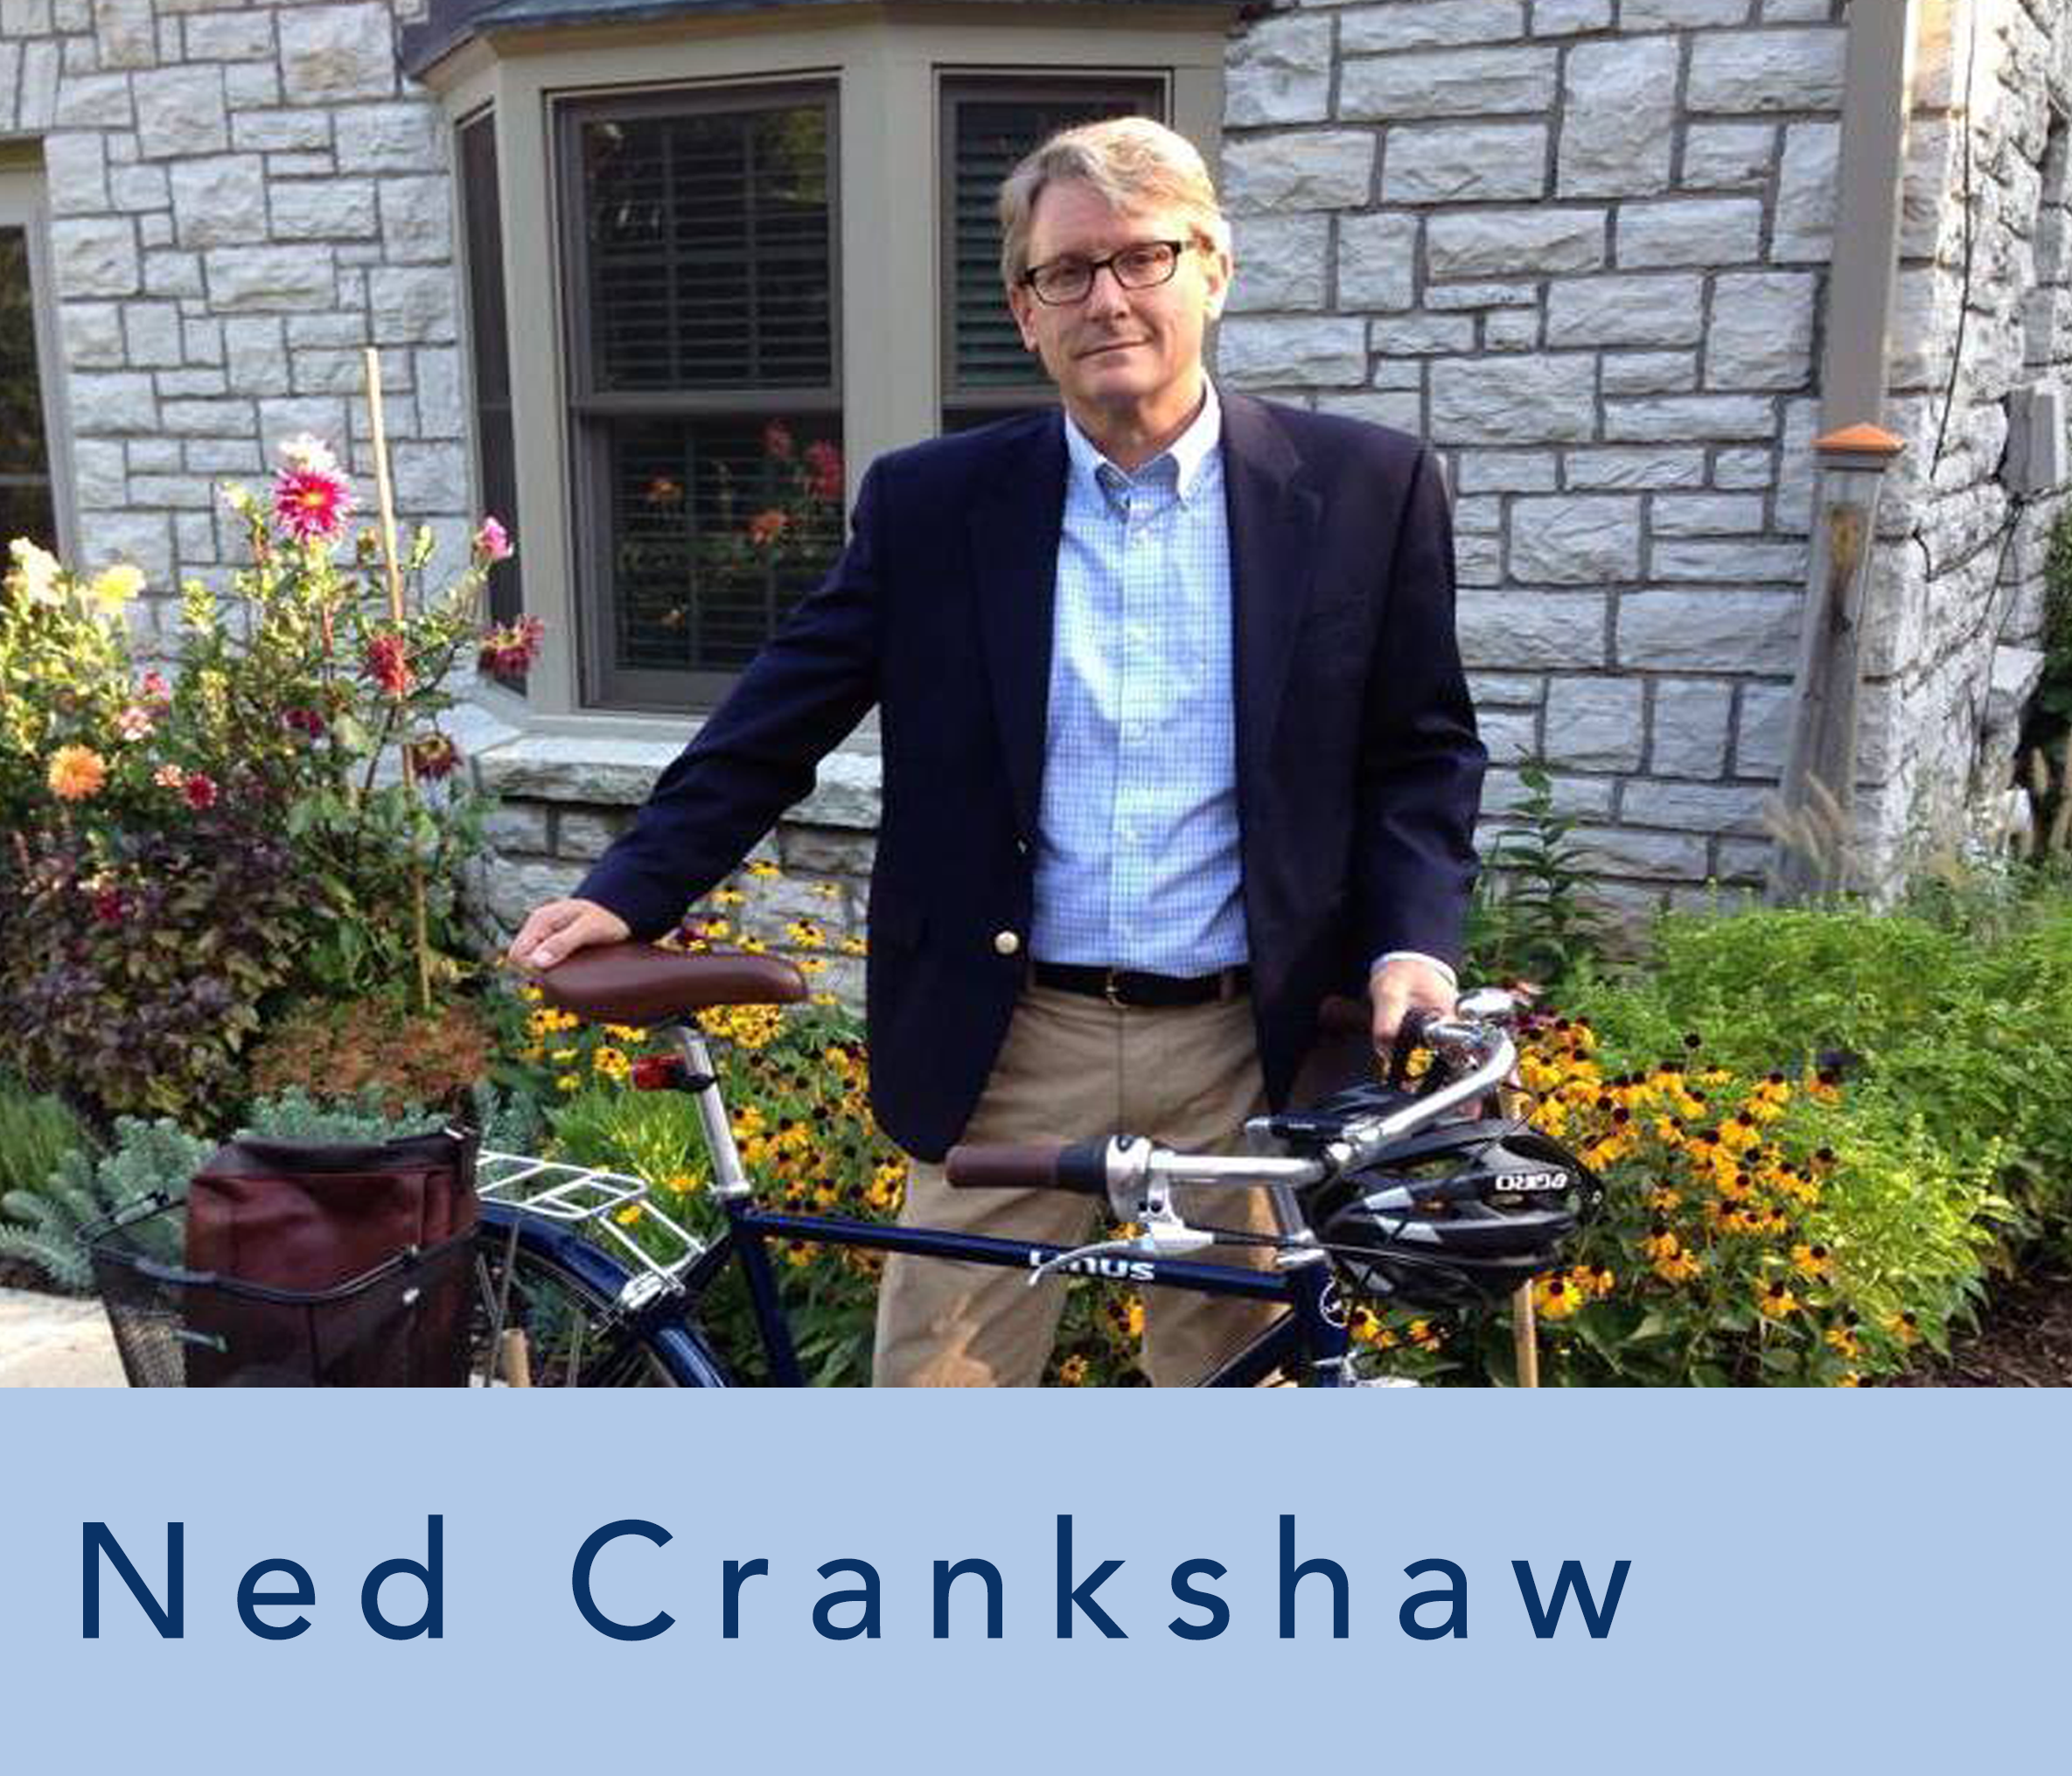 ned crankshaw with his bicycle